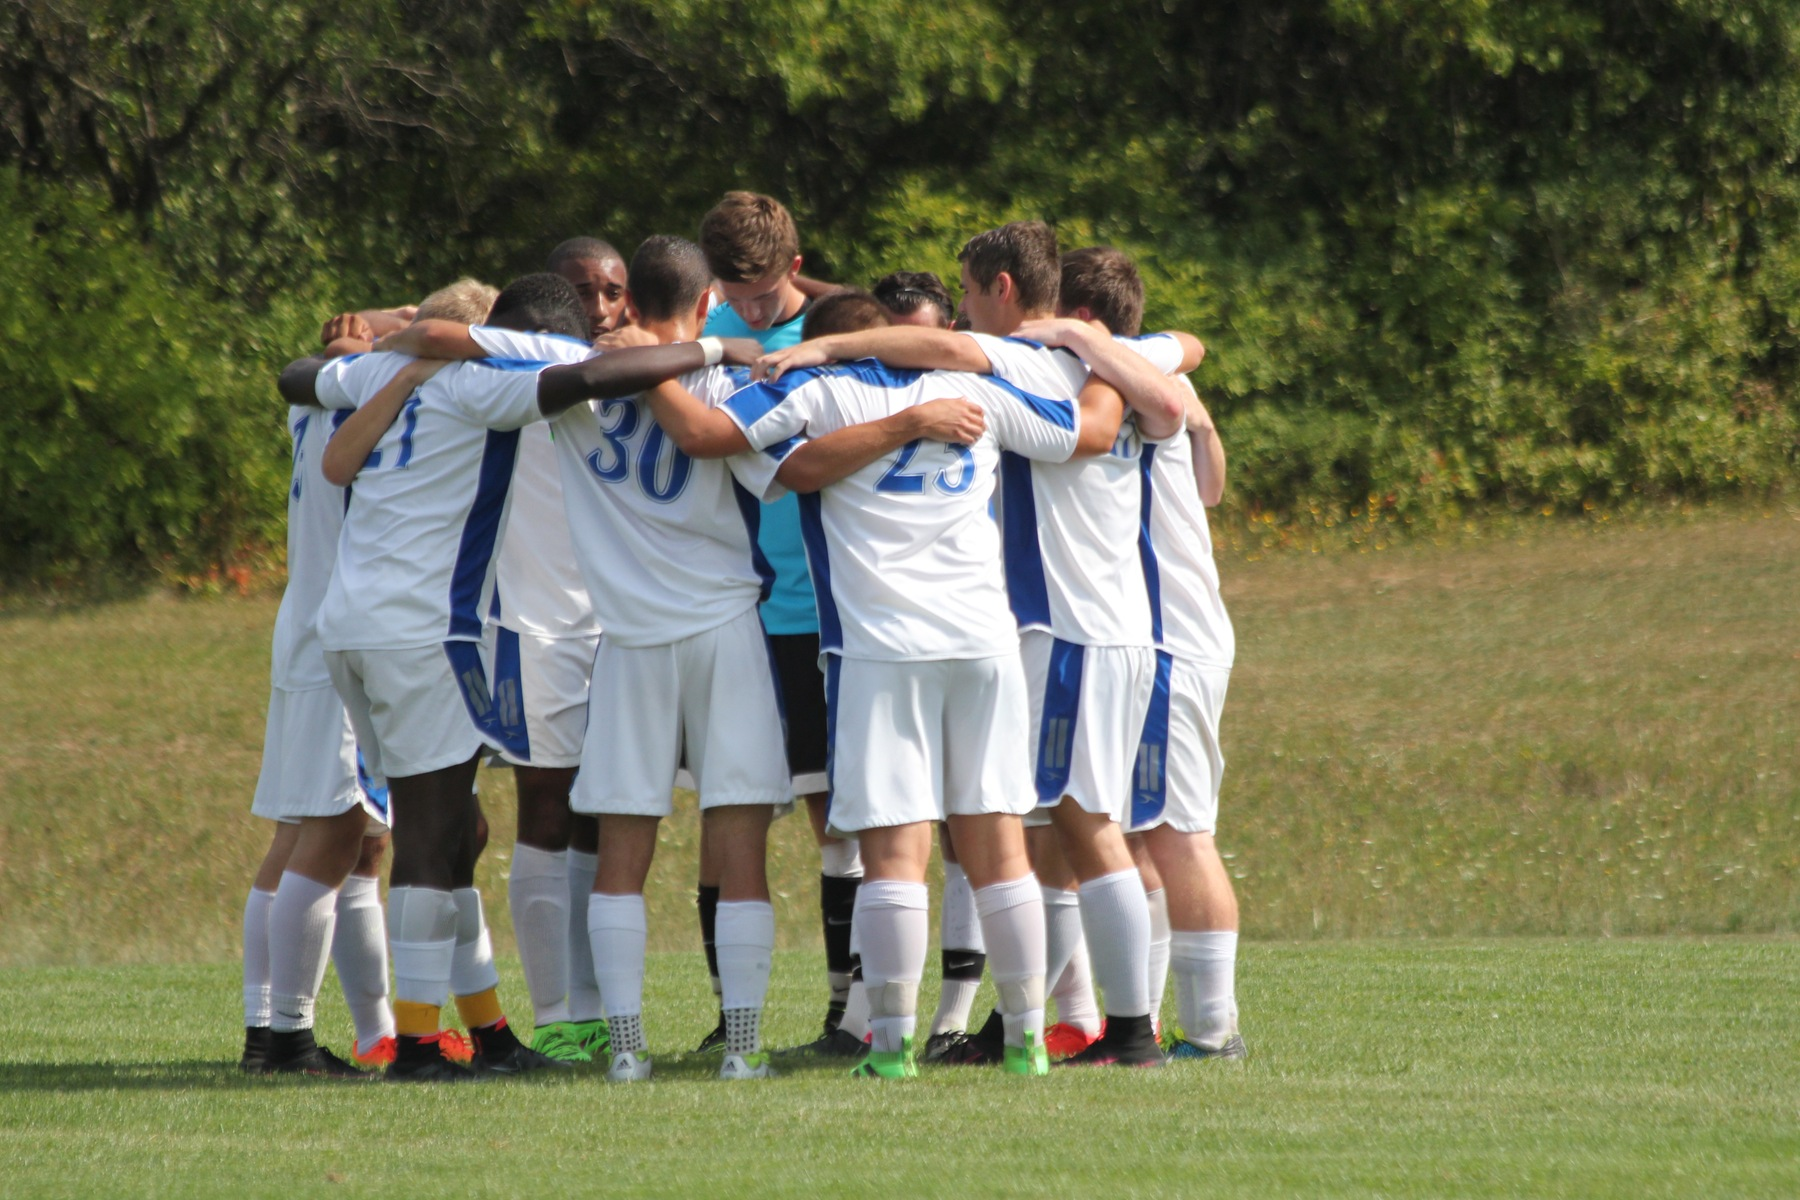 Men's Soccer loses to Harford Community College